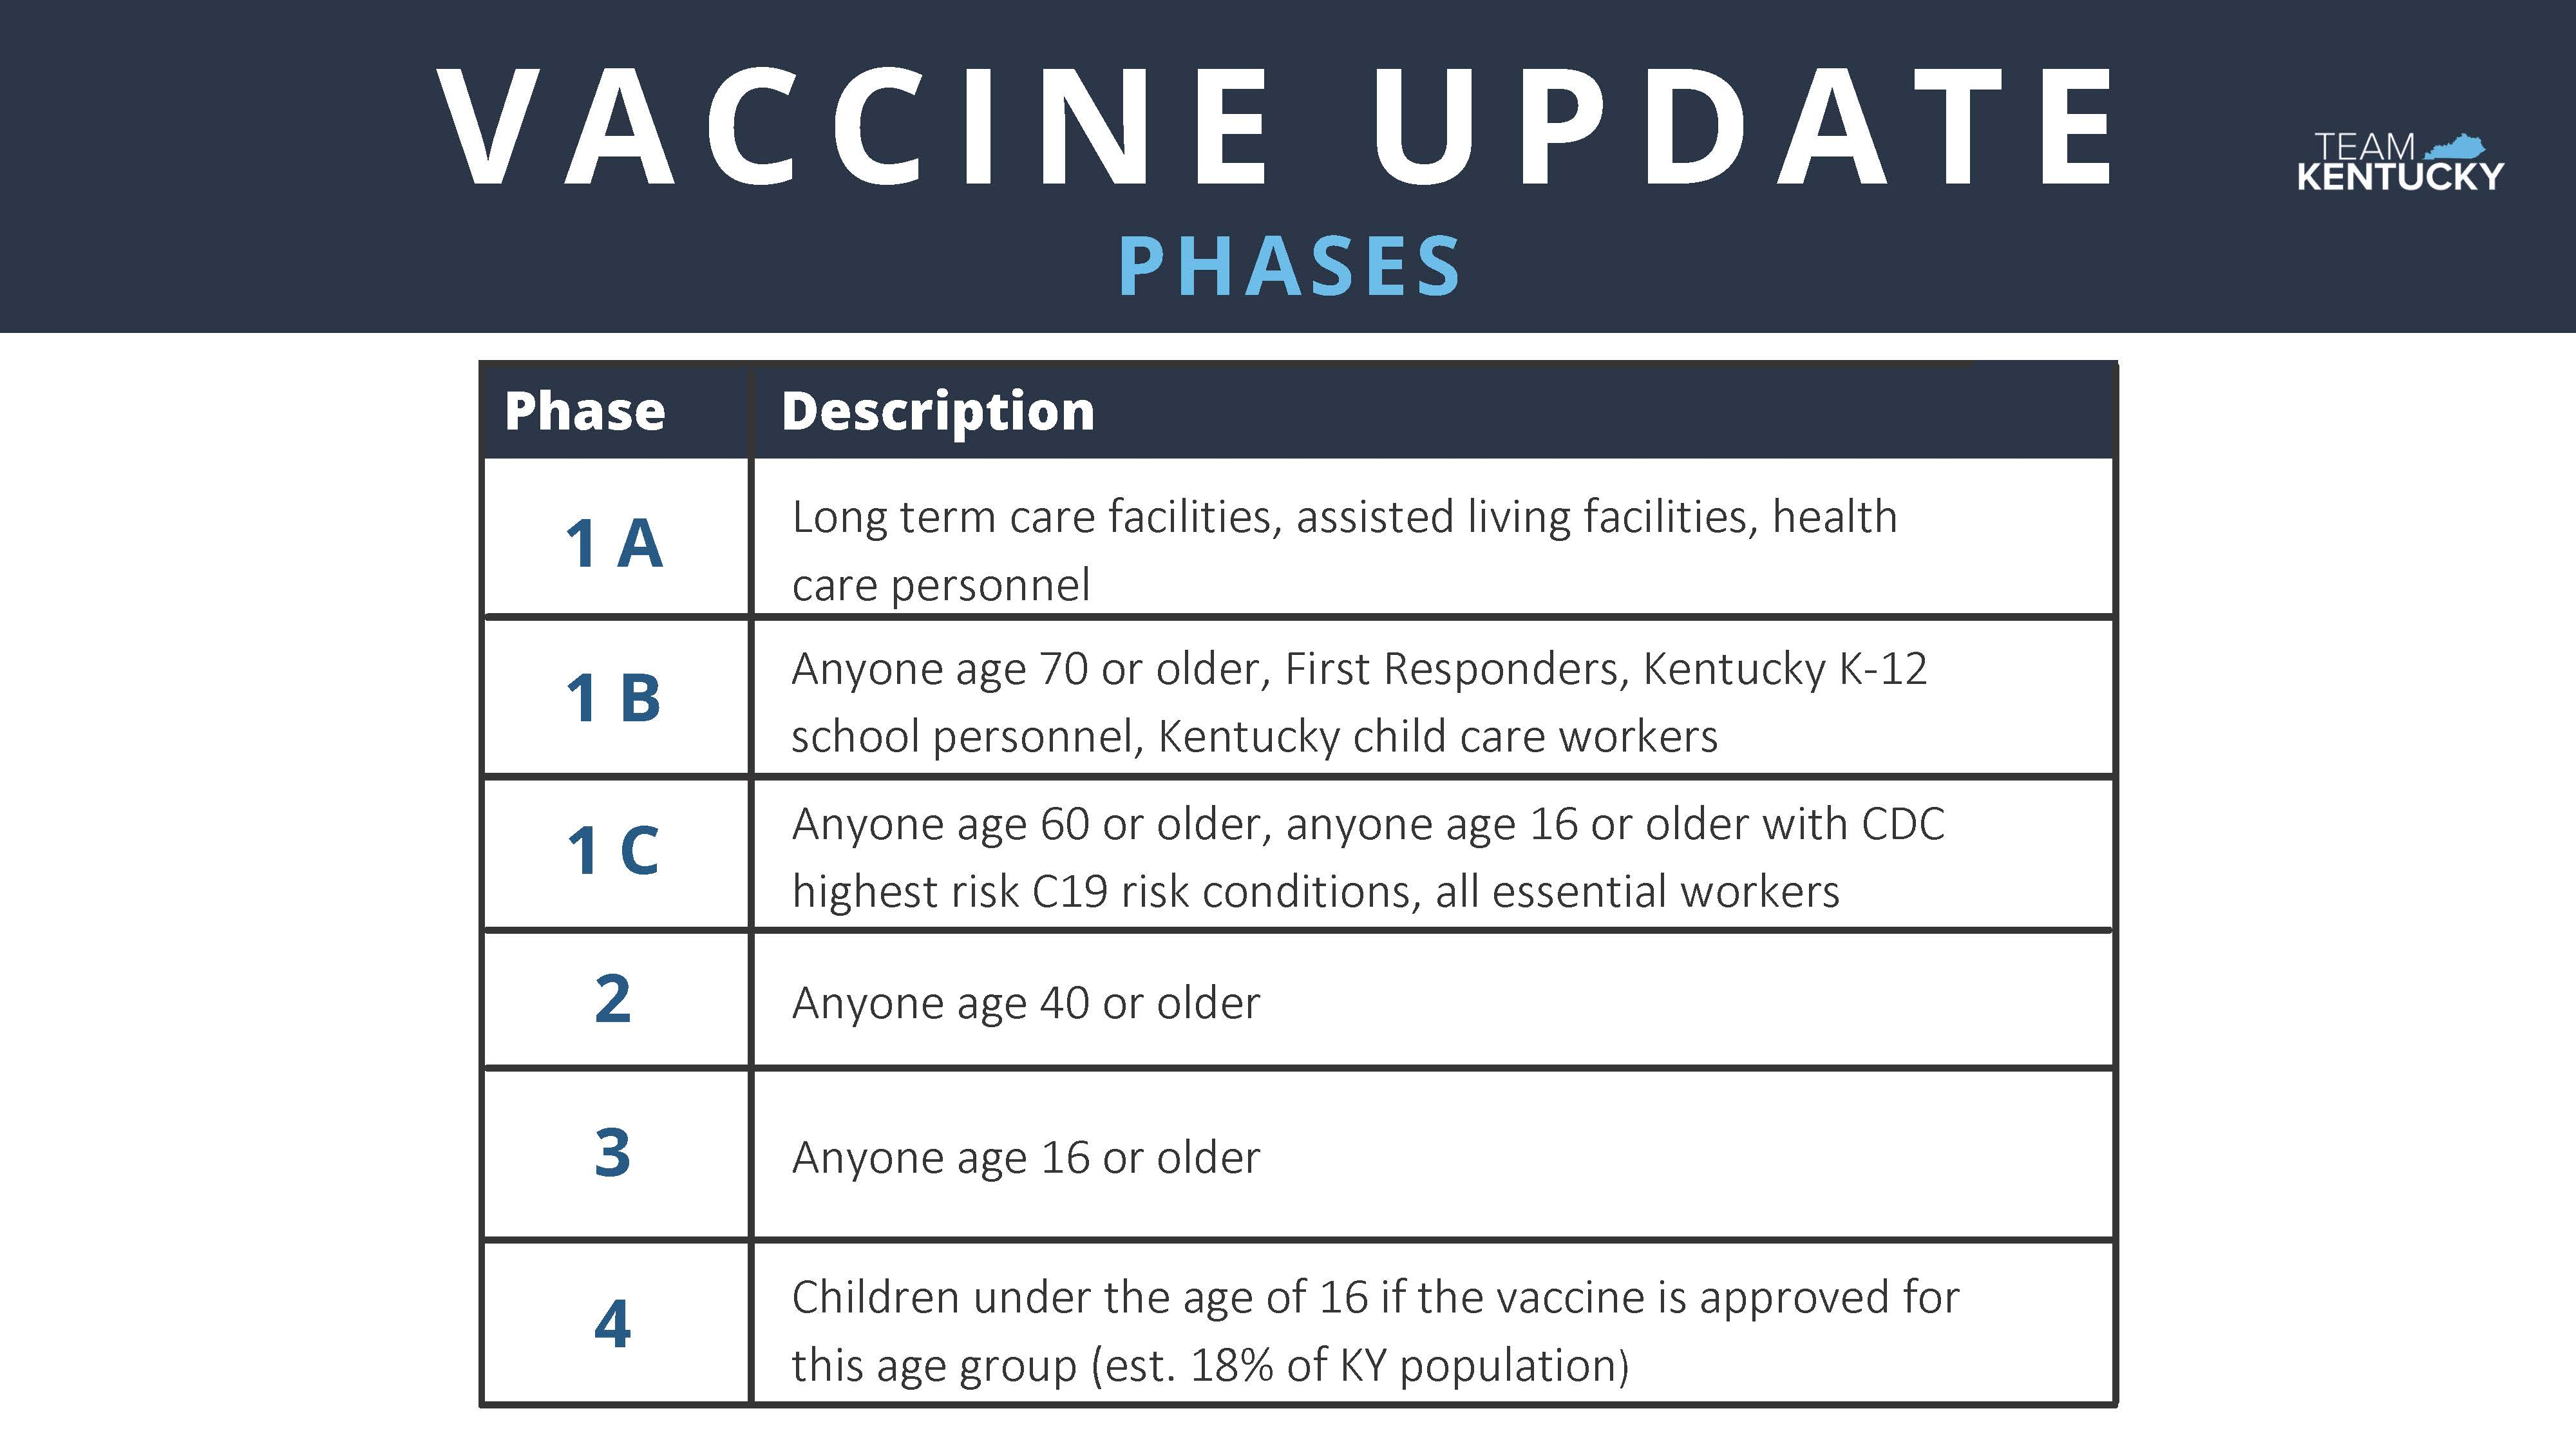 Vaccine Phases Update